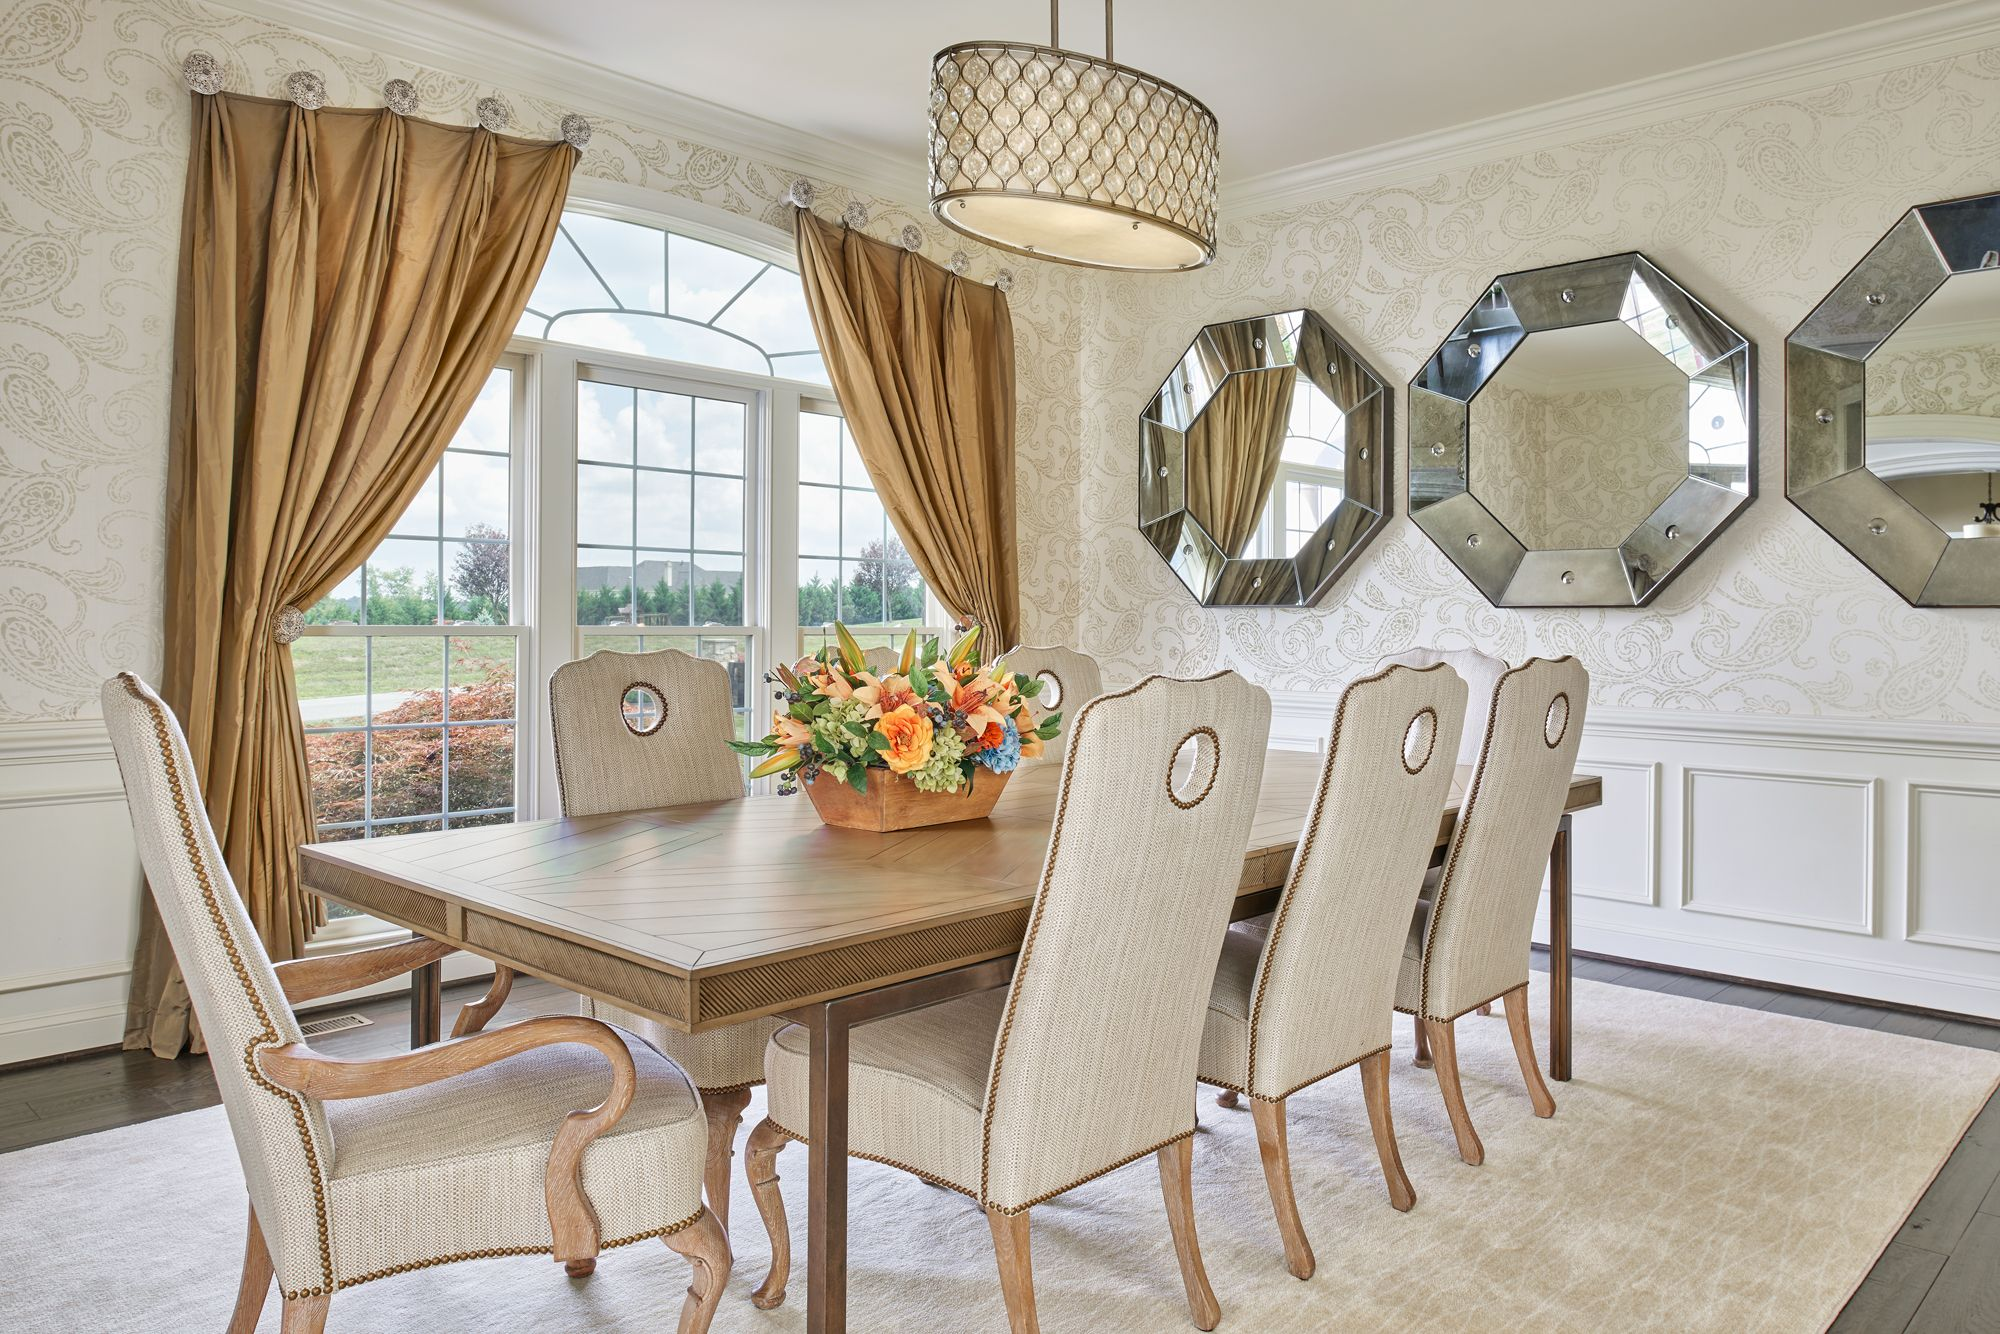 Gorgeous dining room table to seat eight  styled by Grace Thomas     Gorgeous dining room table to seat eight  styled by Grace Thomas Designs   interiordesign  wallpaper  drapery  paneling  wallmirror  octagon